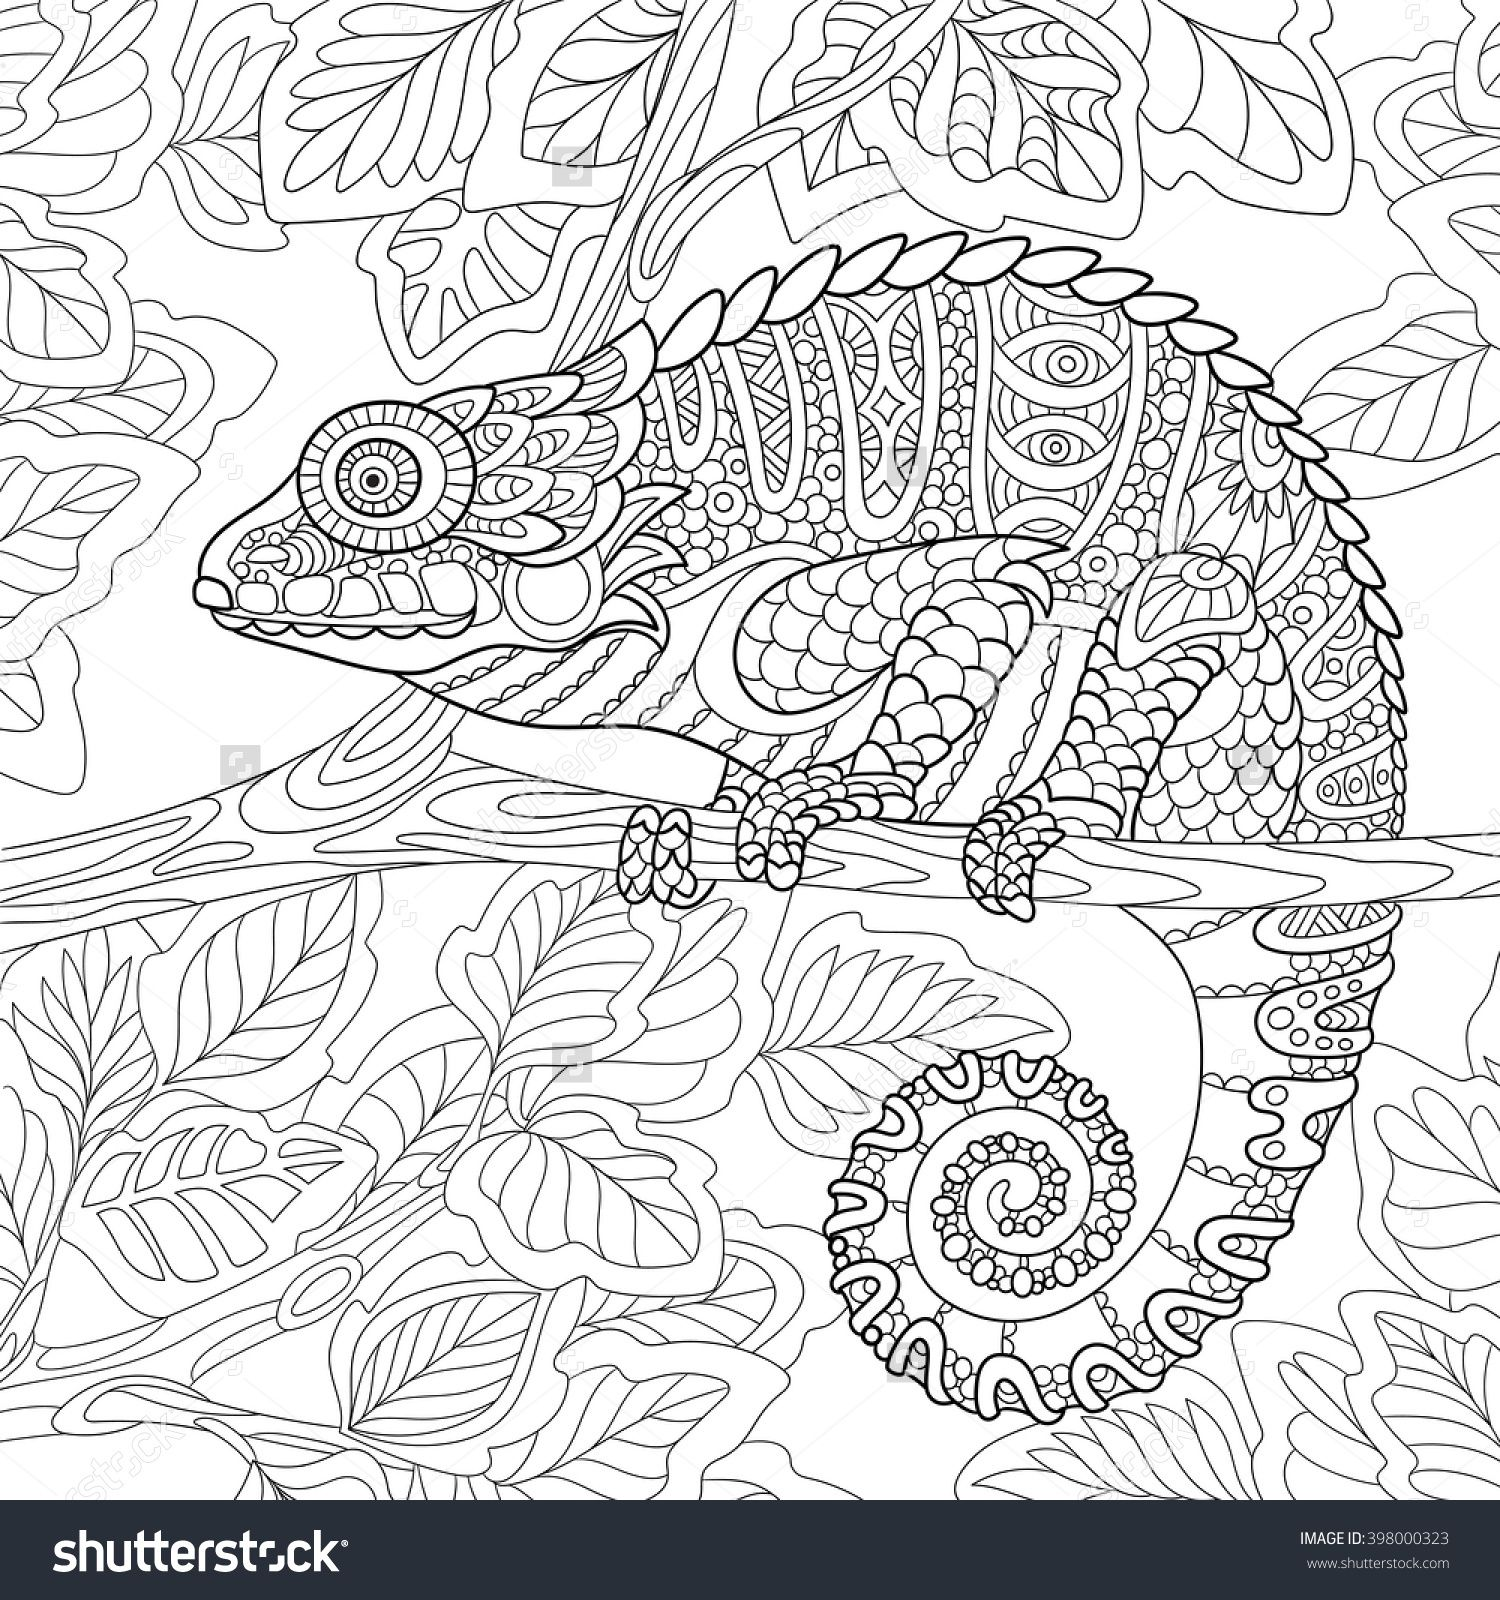 Zentangle Chameleon Sitting On A Tree Branch. Coloring Page I ...